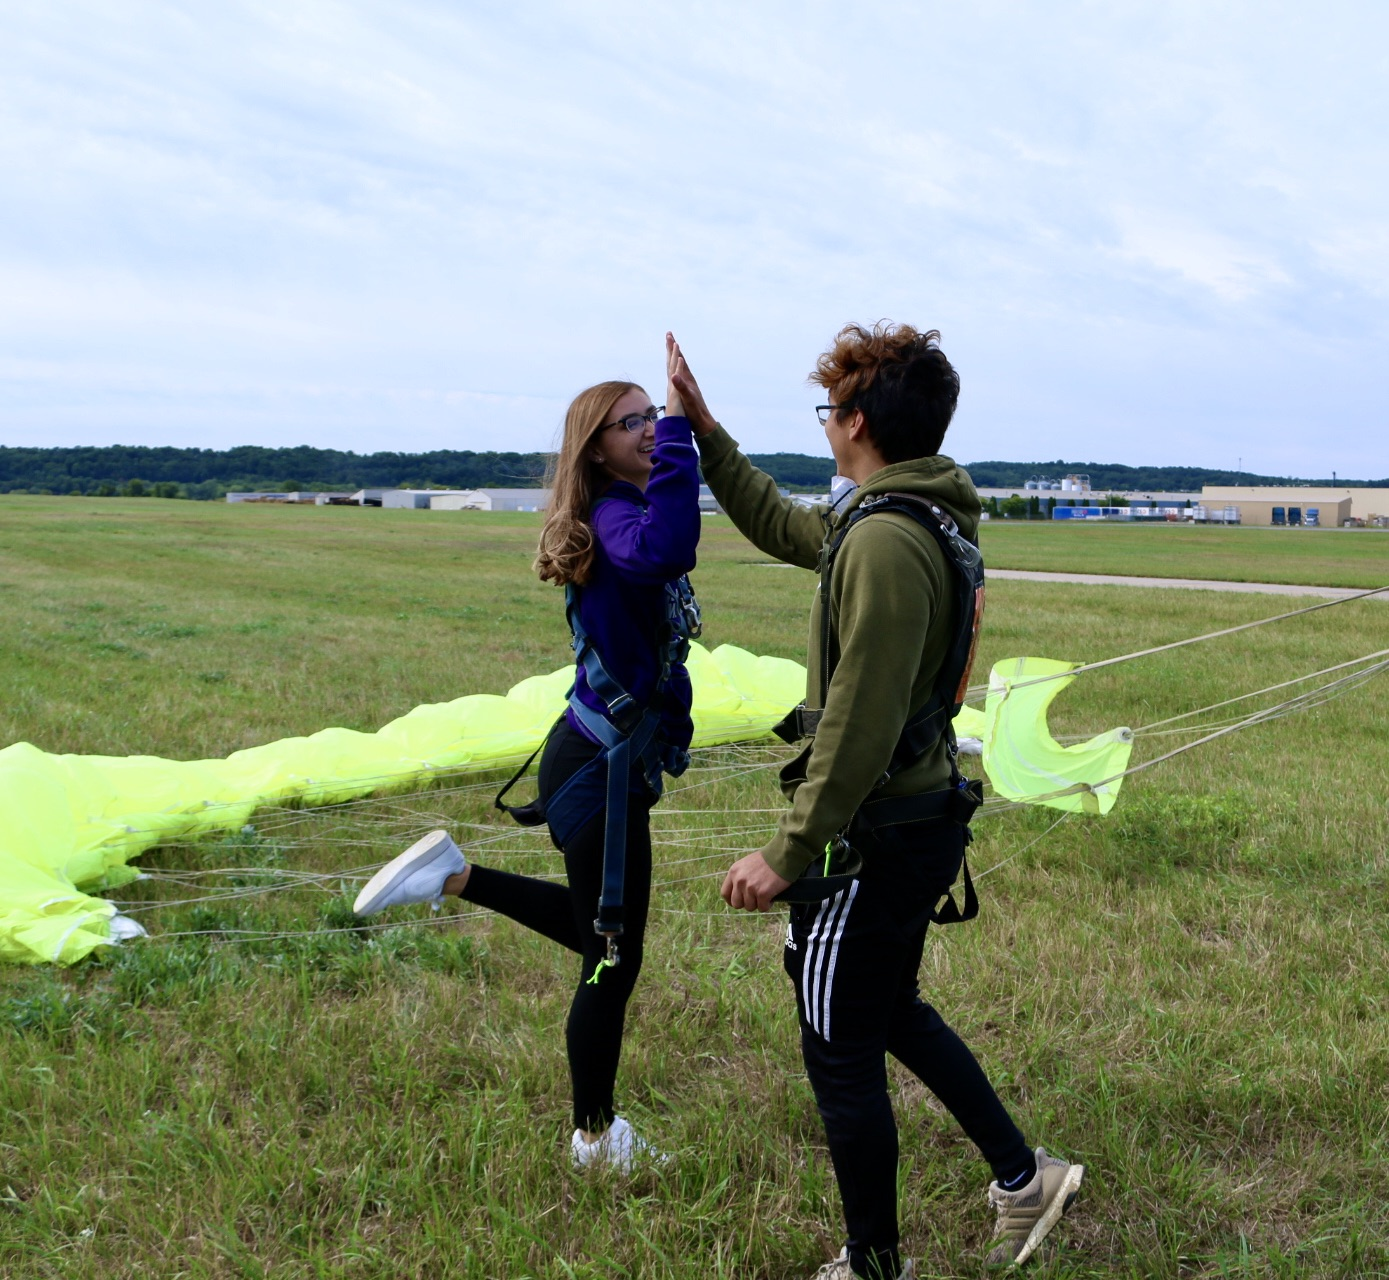 Skydiving On Vacation